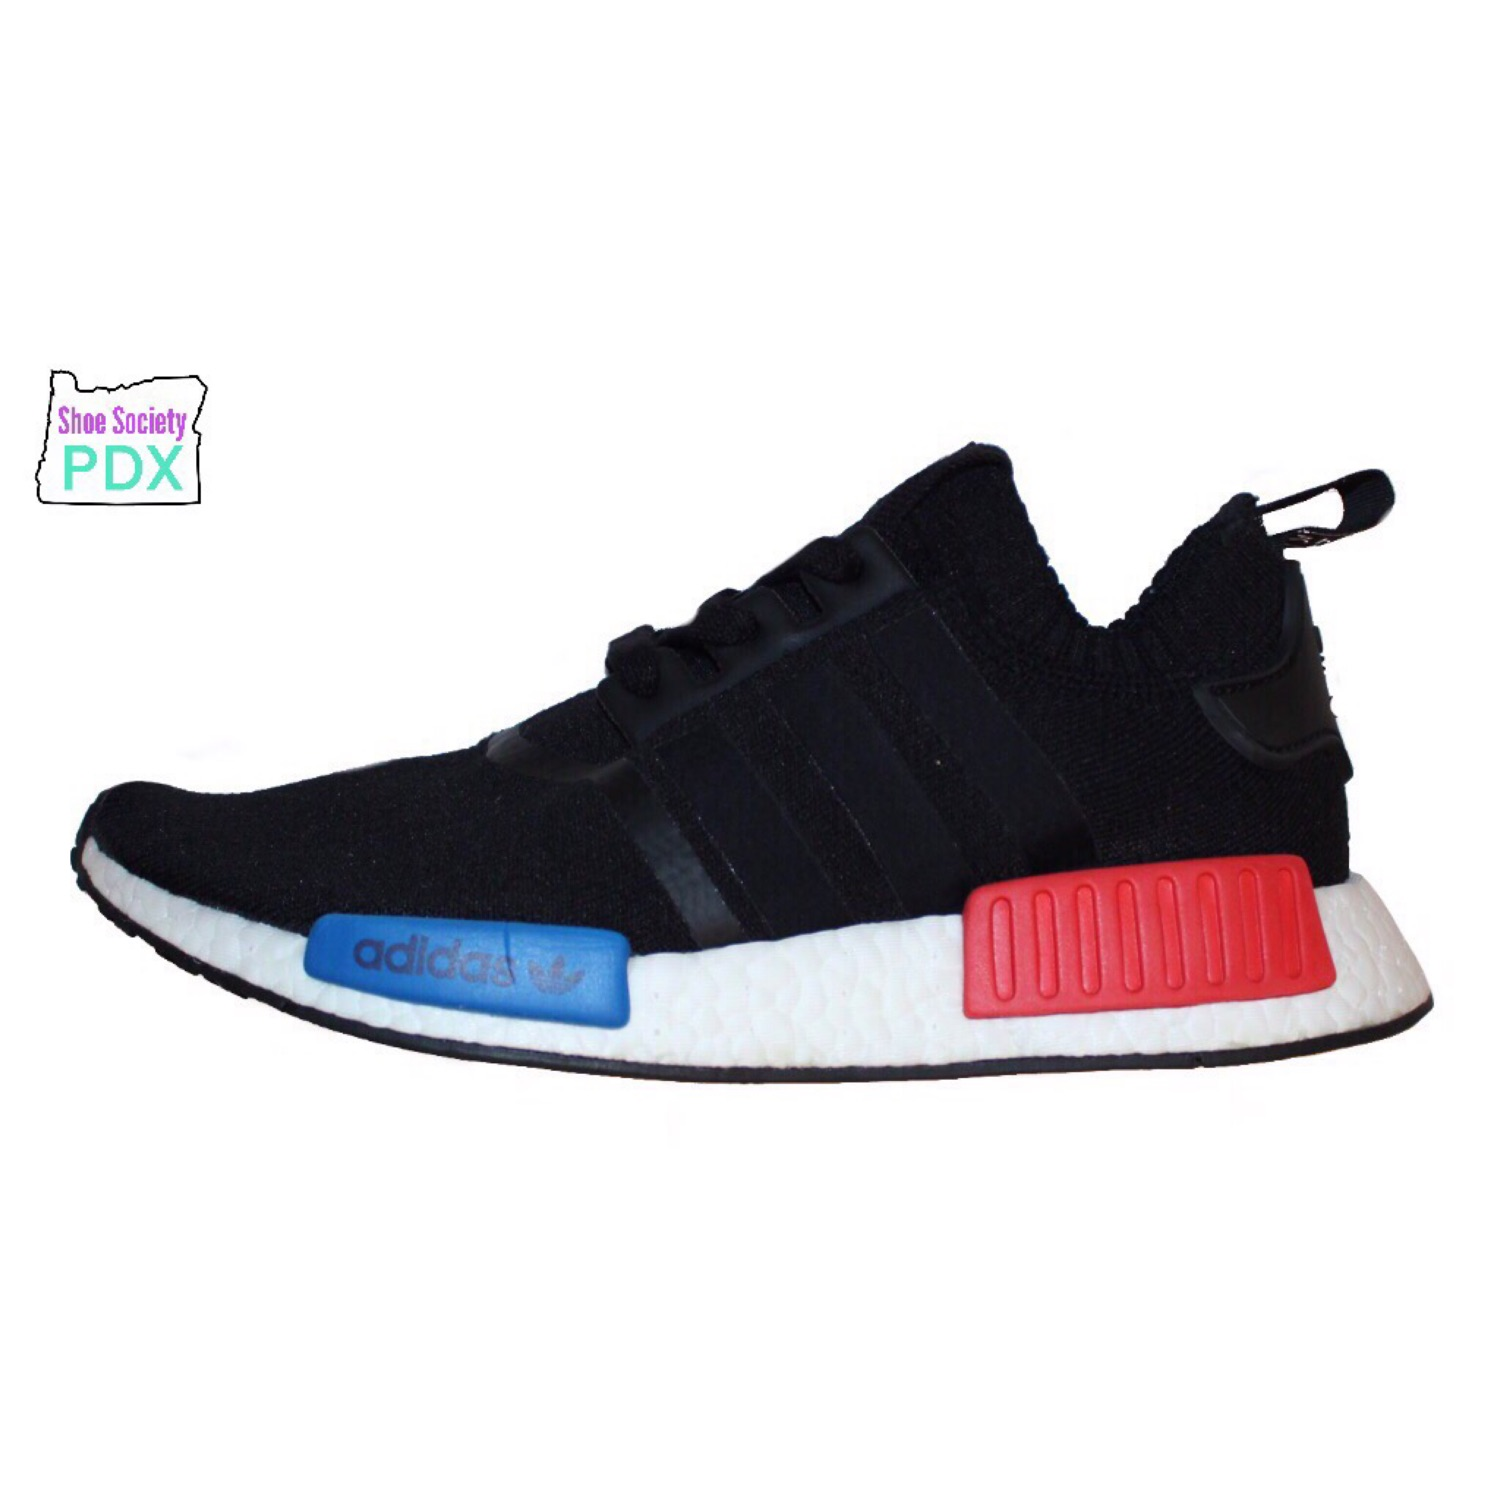 dc989a2bb76 Adidas Nmd R1 Og Core Black Lush Red. US 8.5.  190. Adidas Ultraboost 1.0  Collegiate Navy